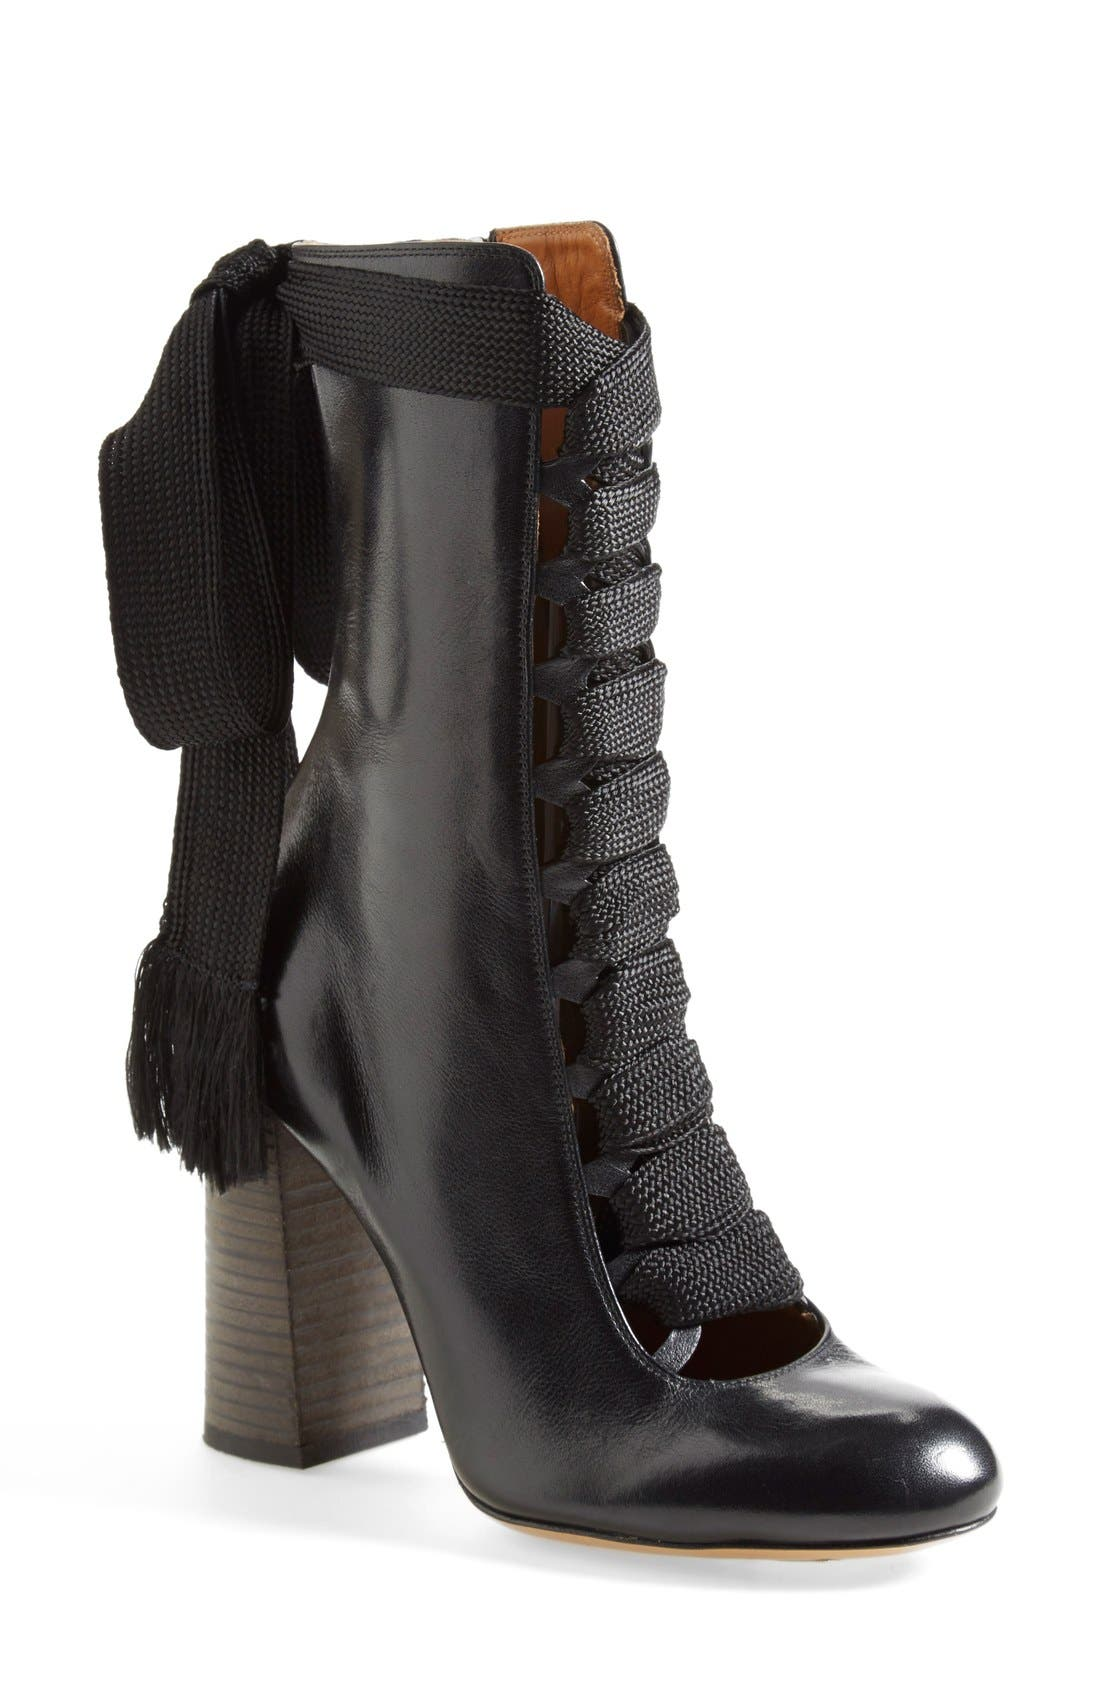 Alternate Image 1 Selected - Chloé 'Harper' Lace-Up Boot (Women)